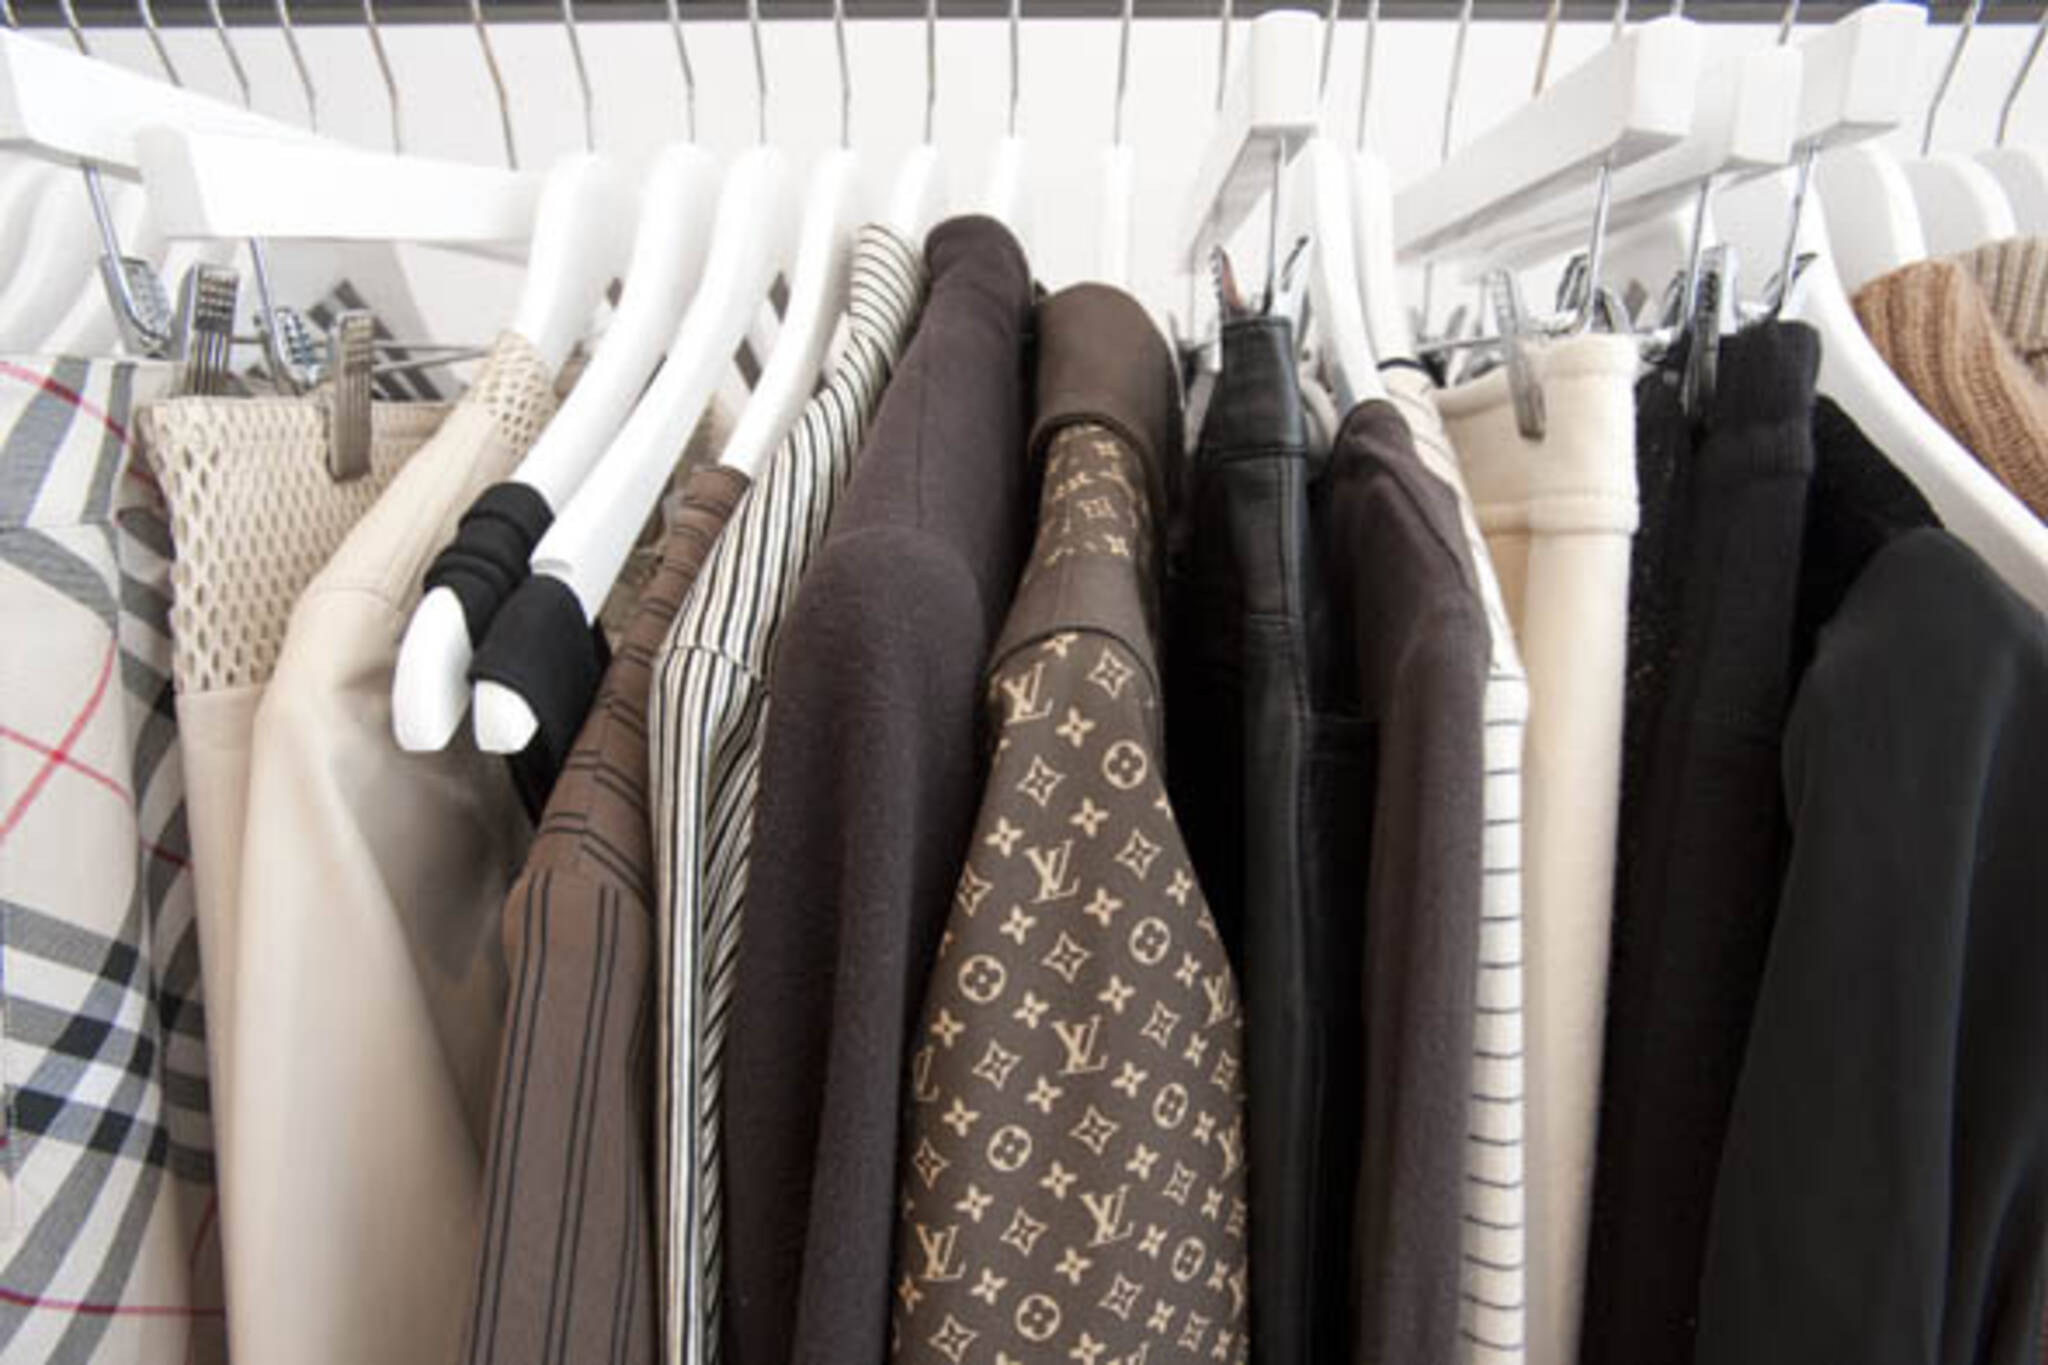 The top 10 cheap designer clothing stores in Toronto